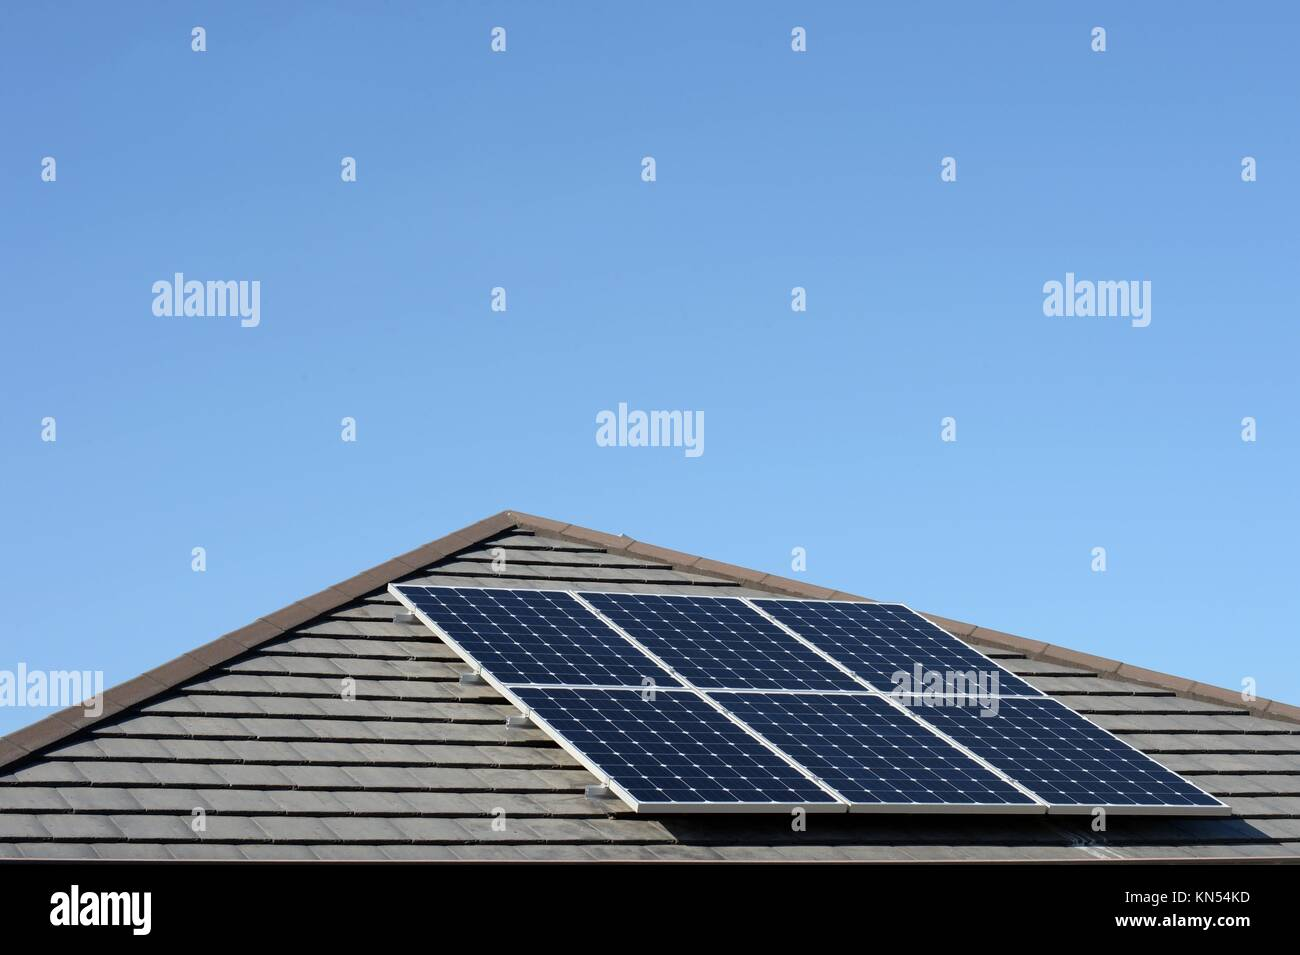 A shot of solar panels of a tiled roof Stock Photo: 167914529 - Alamy